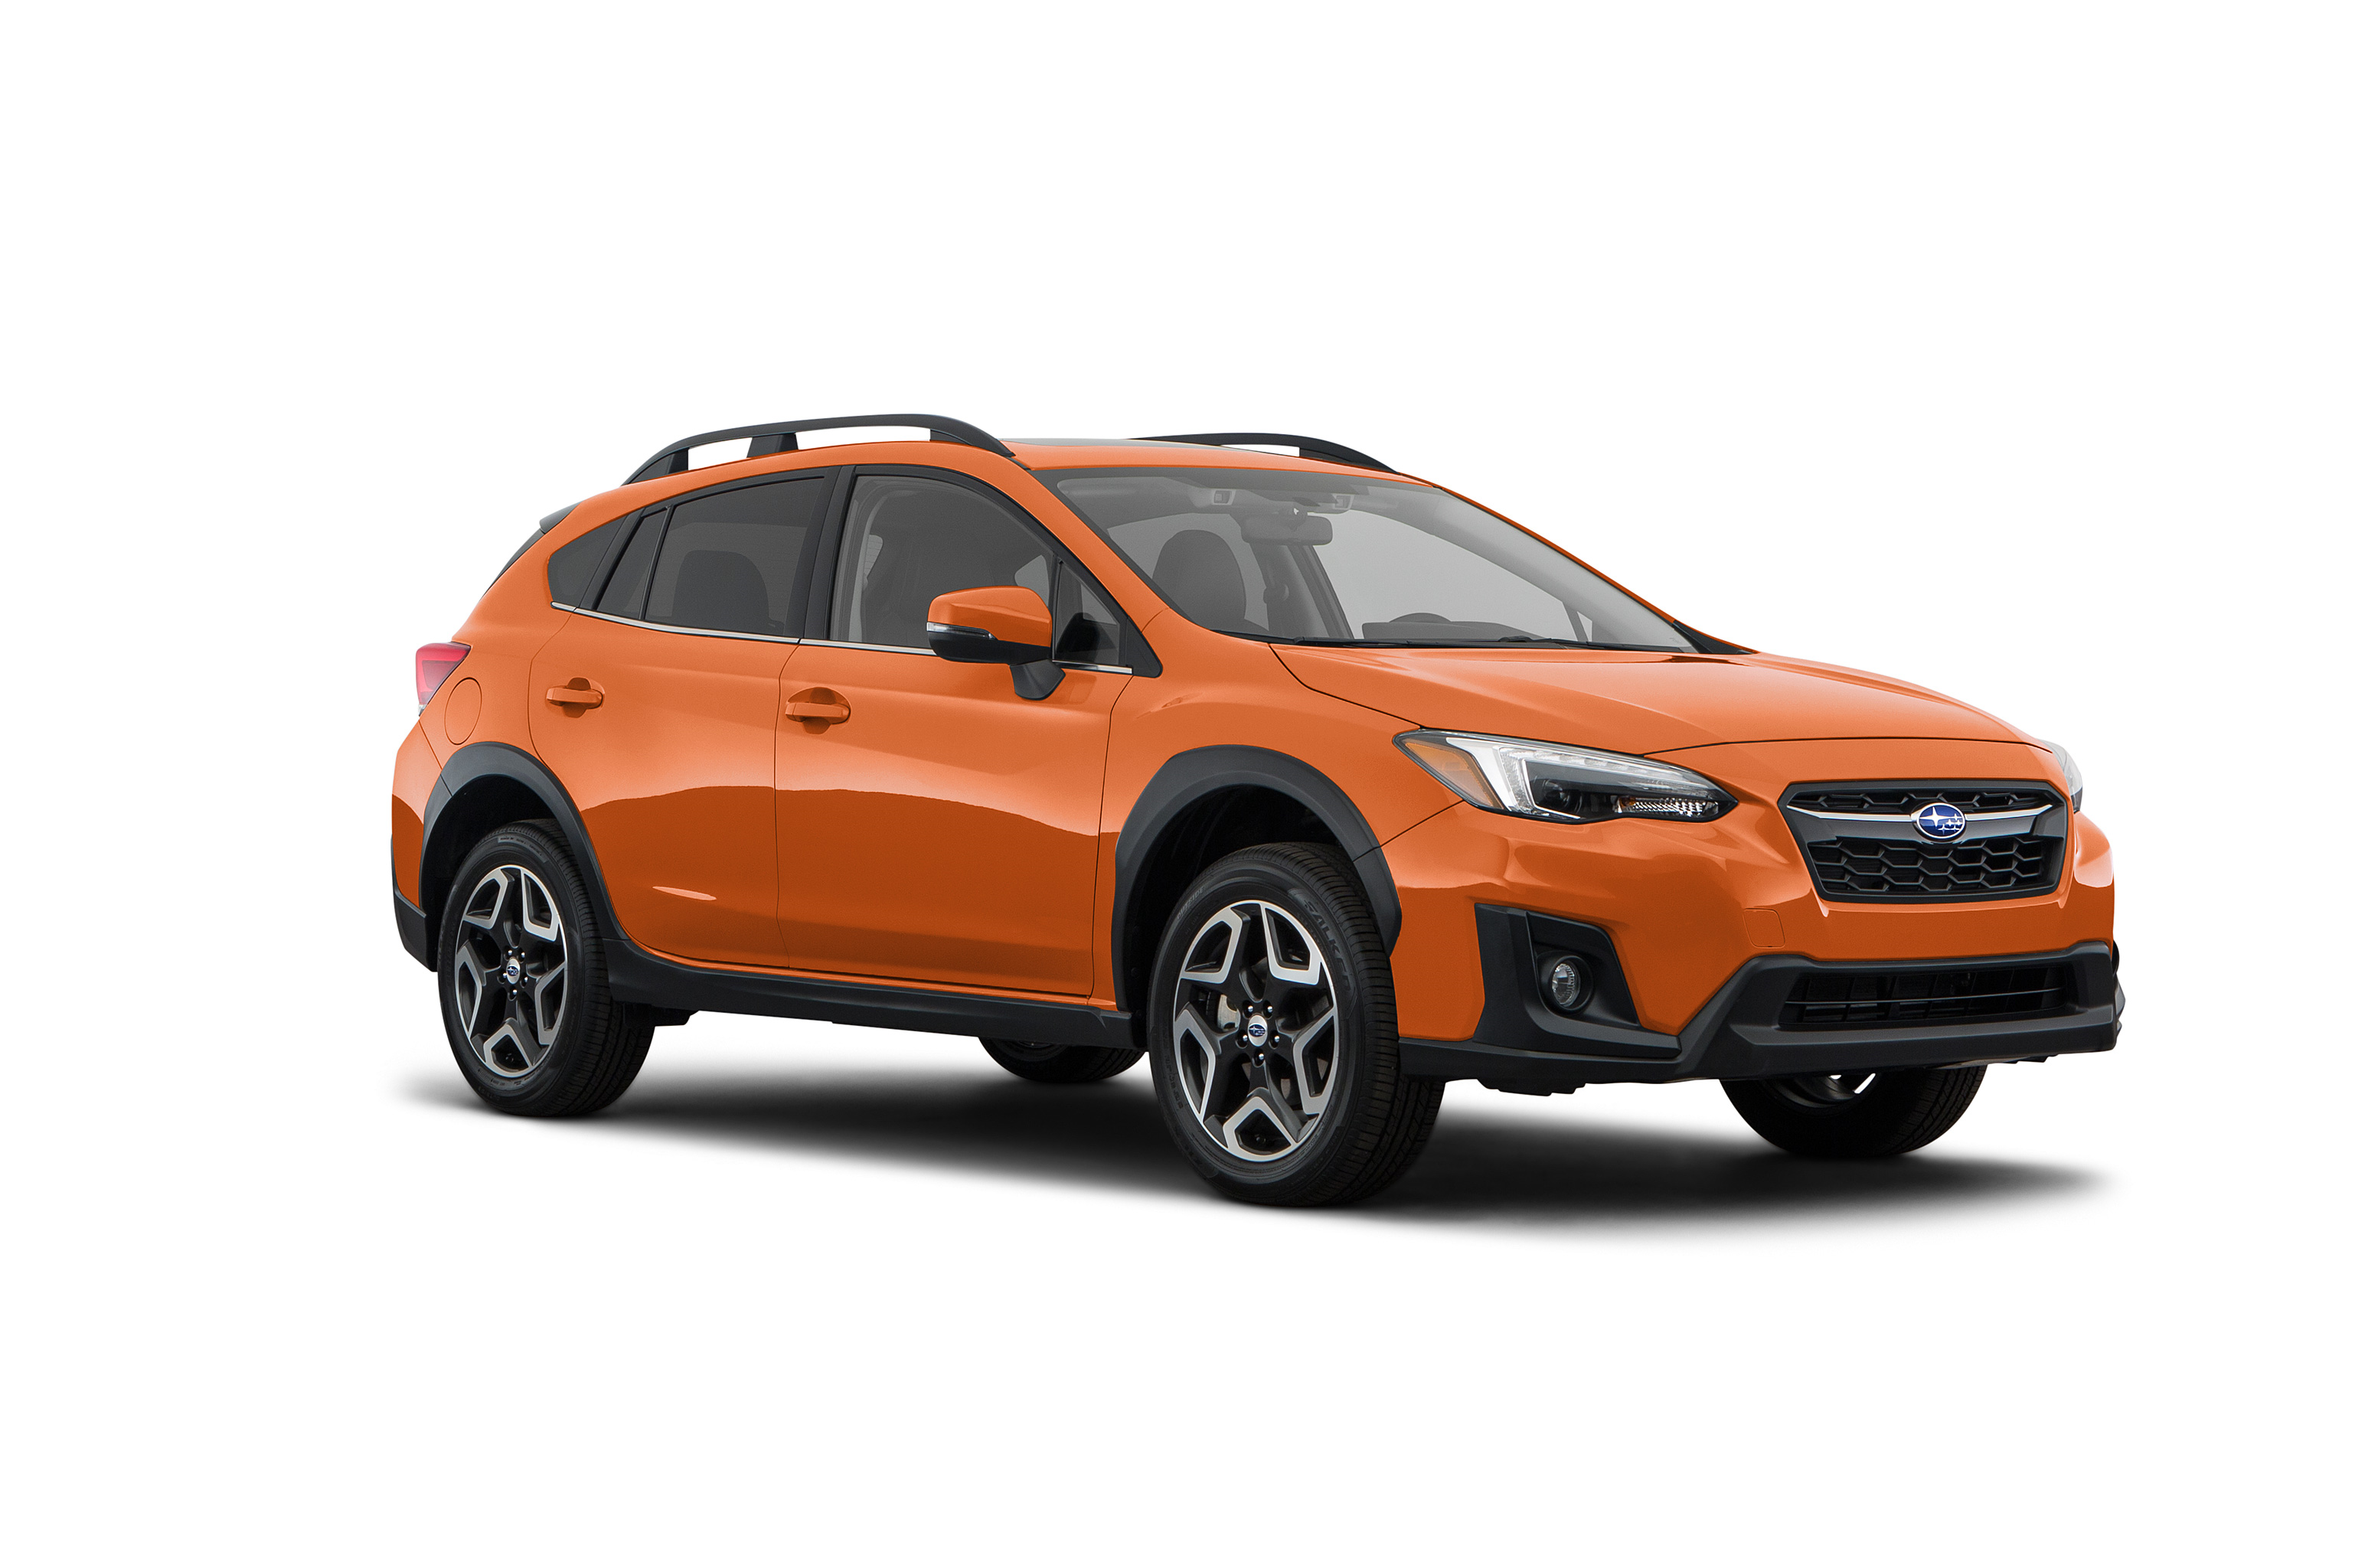 shop genuine 2015 subaru crosstrek accessories from north park subaru. Black Bedroom Furniture Sets. Home Design Ideas